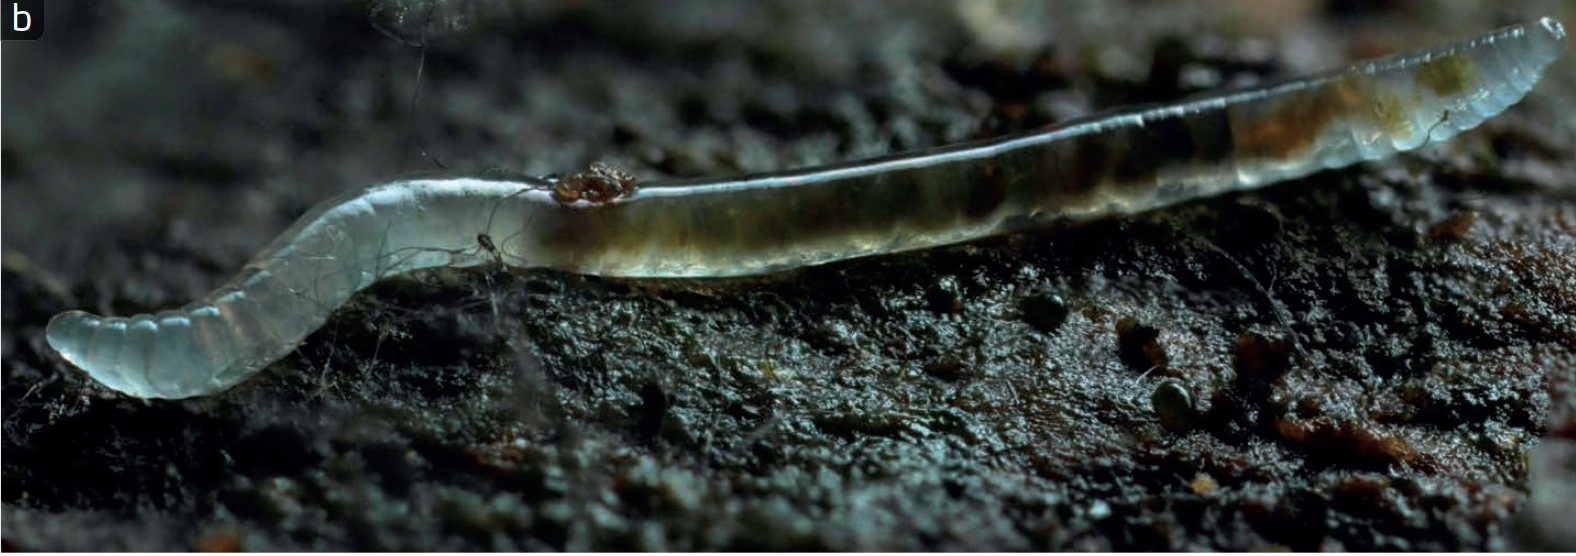 Enchytraeides - Enchytraeidae is a family of segmented worms (phylum Annelida) commonly known as potworms. They dominant members of soil communities in cold, wet, and organic rich habitats like peat bogs and moorlands. They eat bacteria, fungi, and dead plant material.